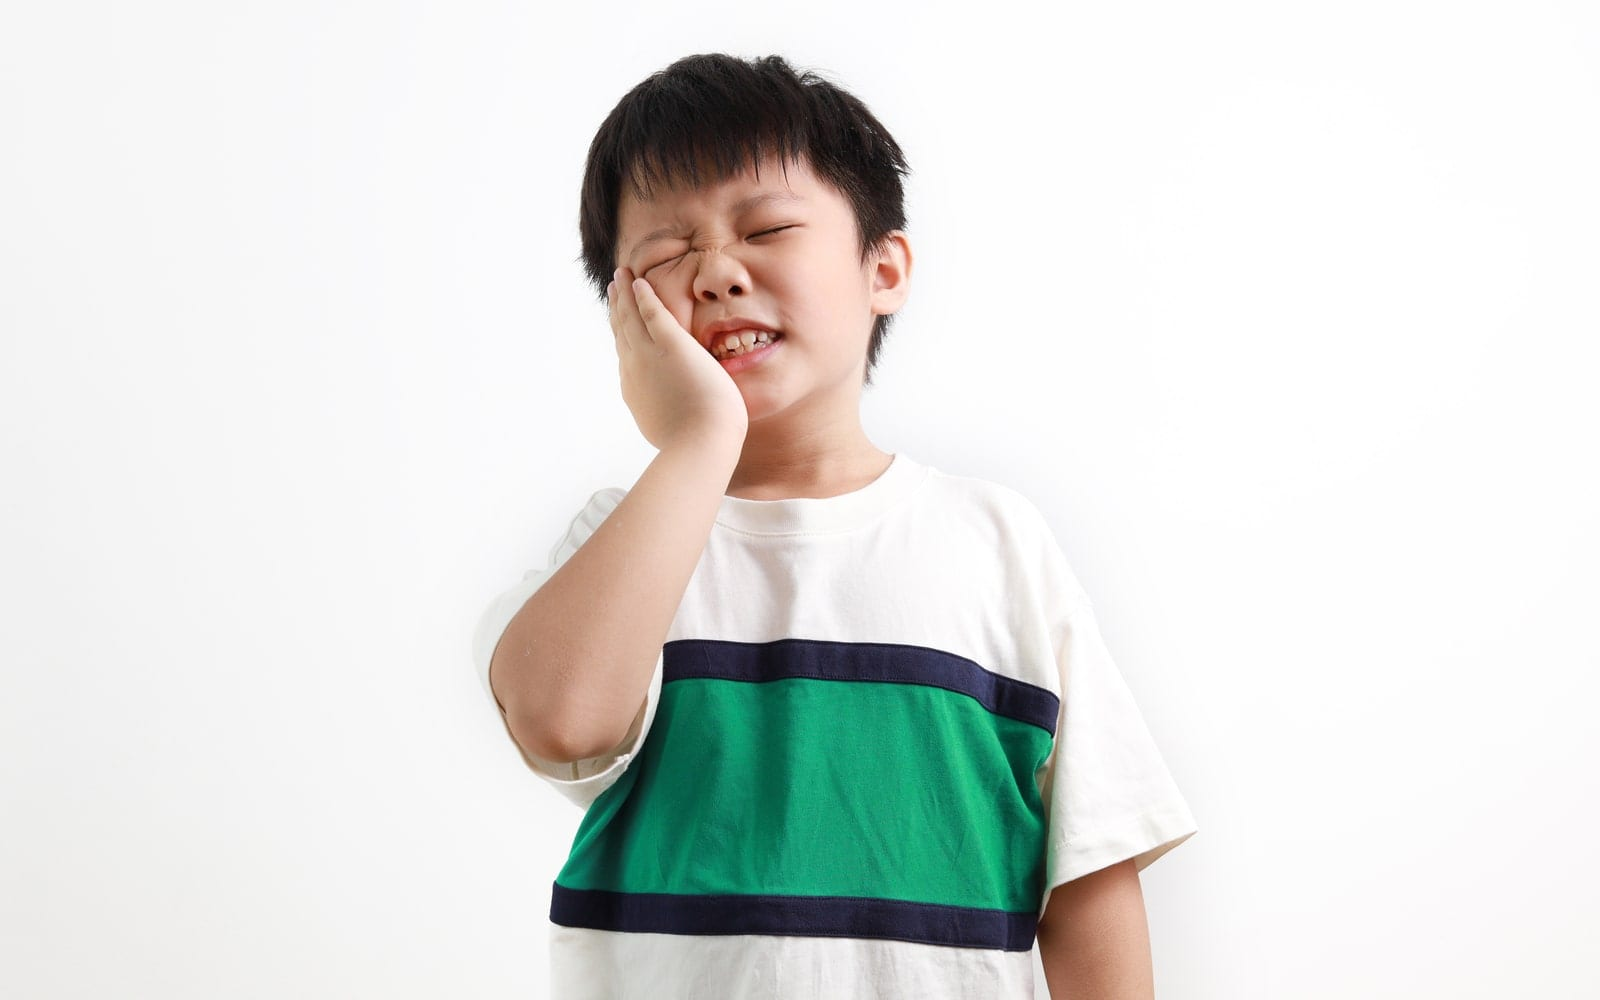 Child Experiencing Dental Pain